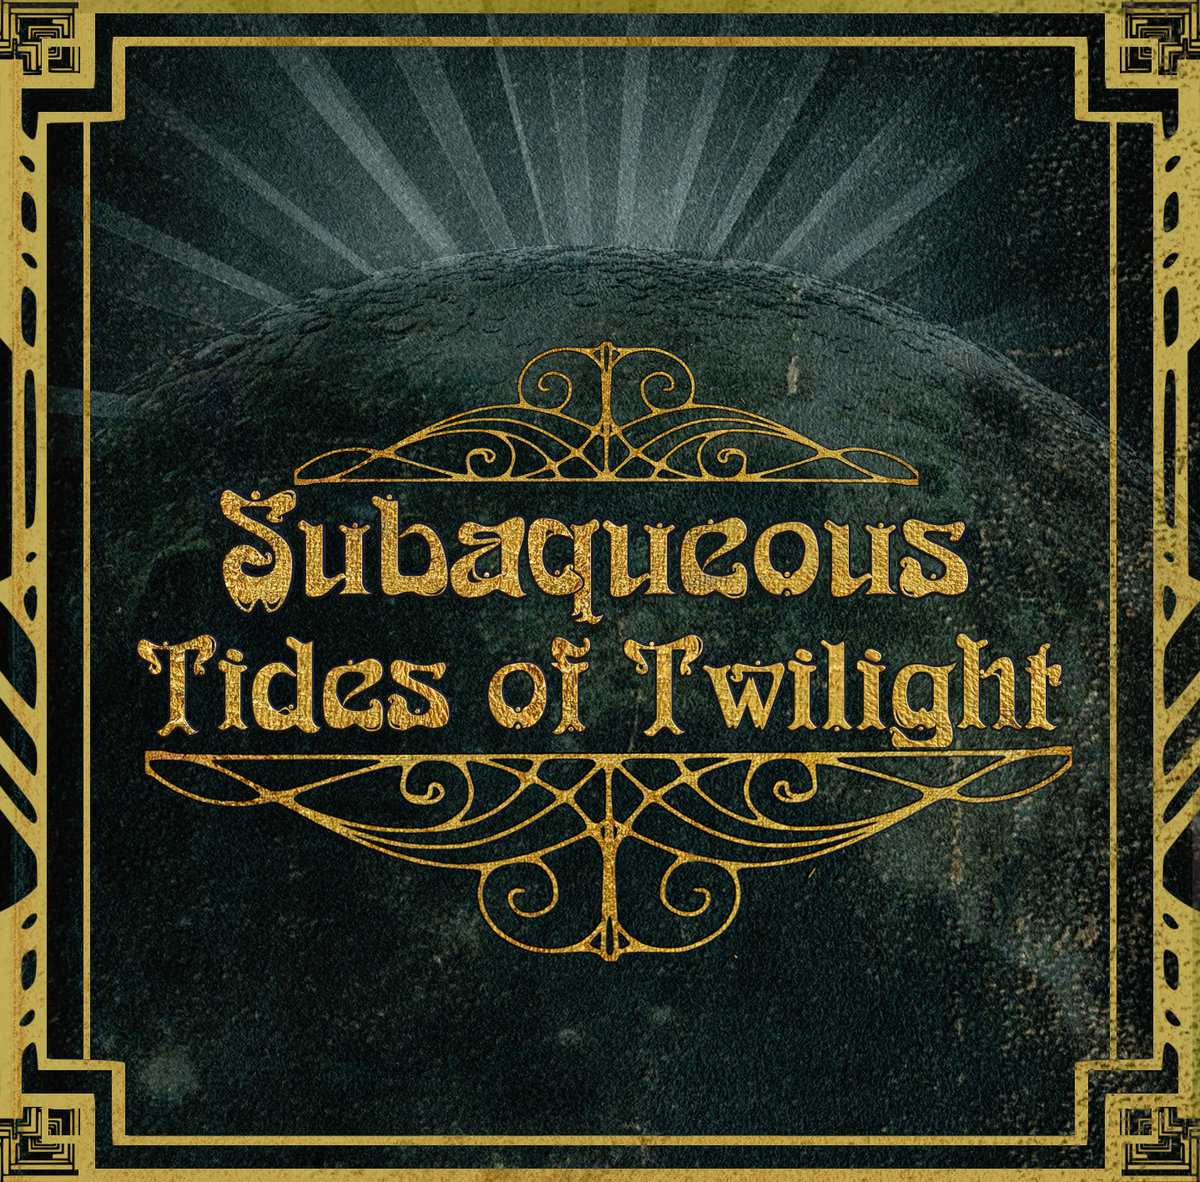 Subaqueous feat. George Sadak and GUDA - Tides of Twilight @ 'Tides of Twilight' album (electronic, ambient)